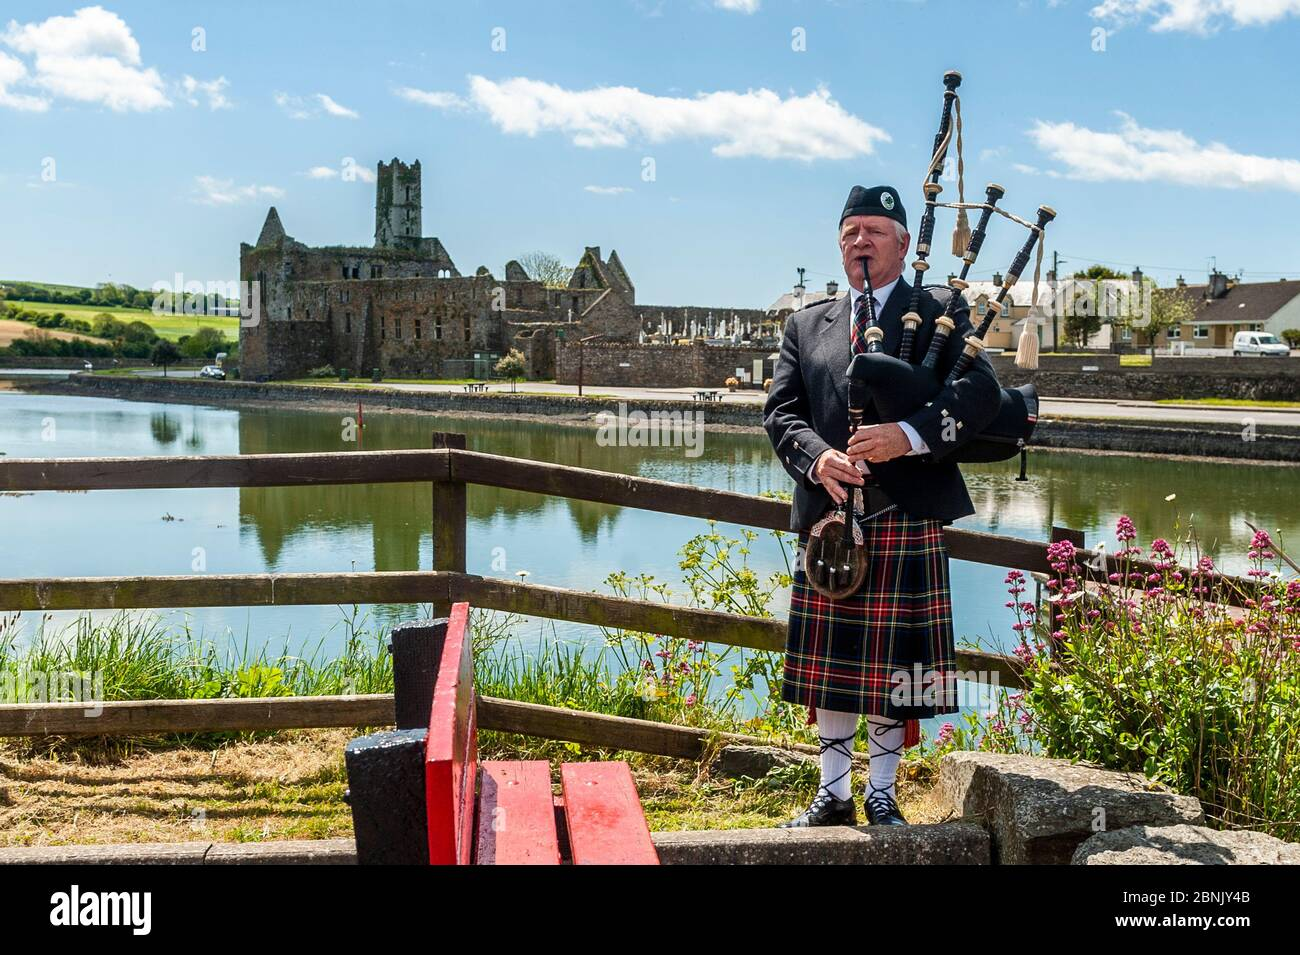 timoleague-west-cork-ireland-15th-may-2020-local-man-michael-heaney-from-timoleague-plays-the-bagpipes-with-timoleague-abbey-in-the-background-mr-heaney-was-filmed-playing-the-pipes-as-part-of-arigideen-rangers-gaa-clubs-fundraising-initiative-the-gaa-club-is-raising-money-for-clonakilty-community-hospital-pieta-house-and-timoleague-parish-church-credit-ag-newsalamy-live-news-2BNJY4B.jpg